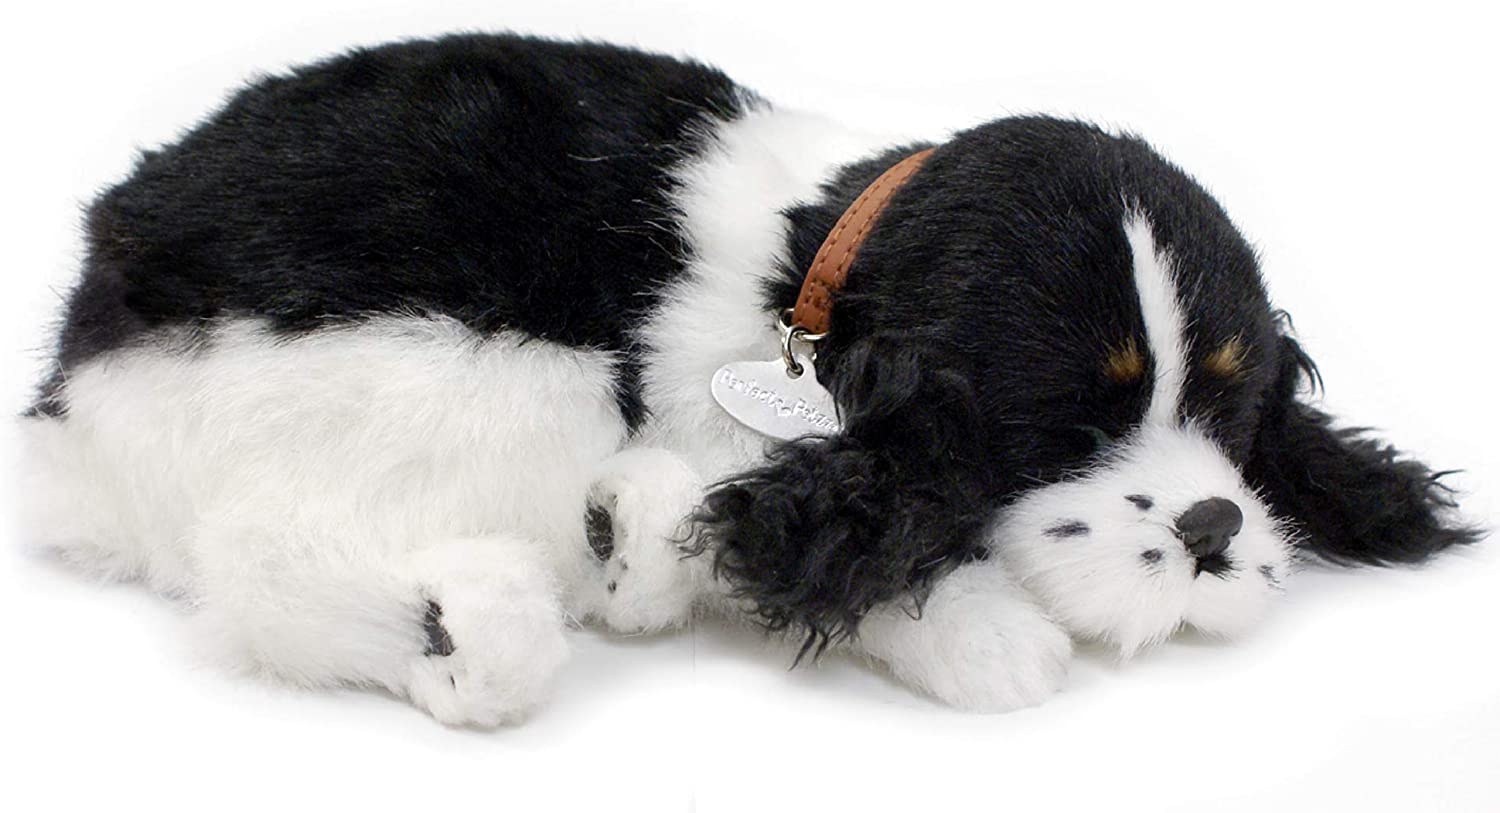 Perfect Petzzz Original Petzzz Cocker Spaniel, Realistic, Lifelike Stuffed Interactive Pet Toy, Companion Pet Dog with 100% Handcrafted Synthetic Fur